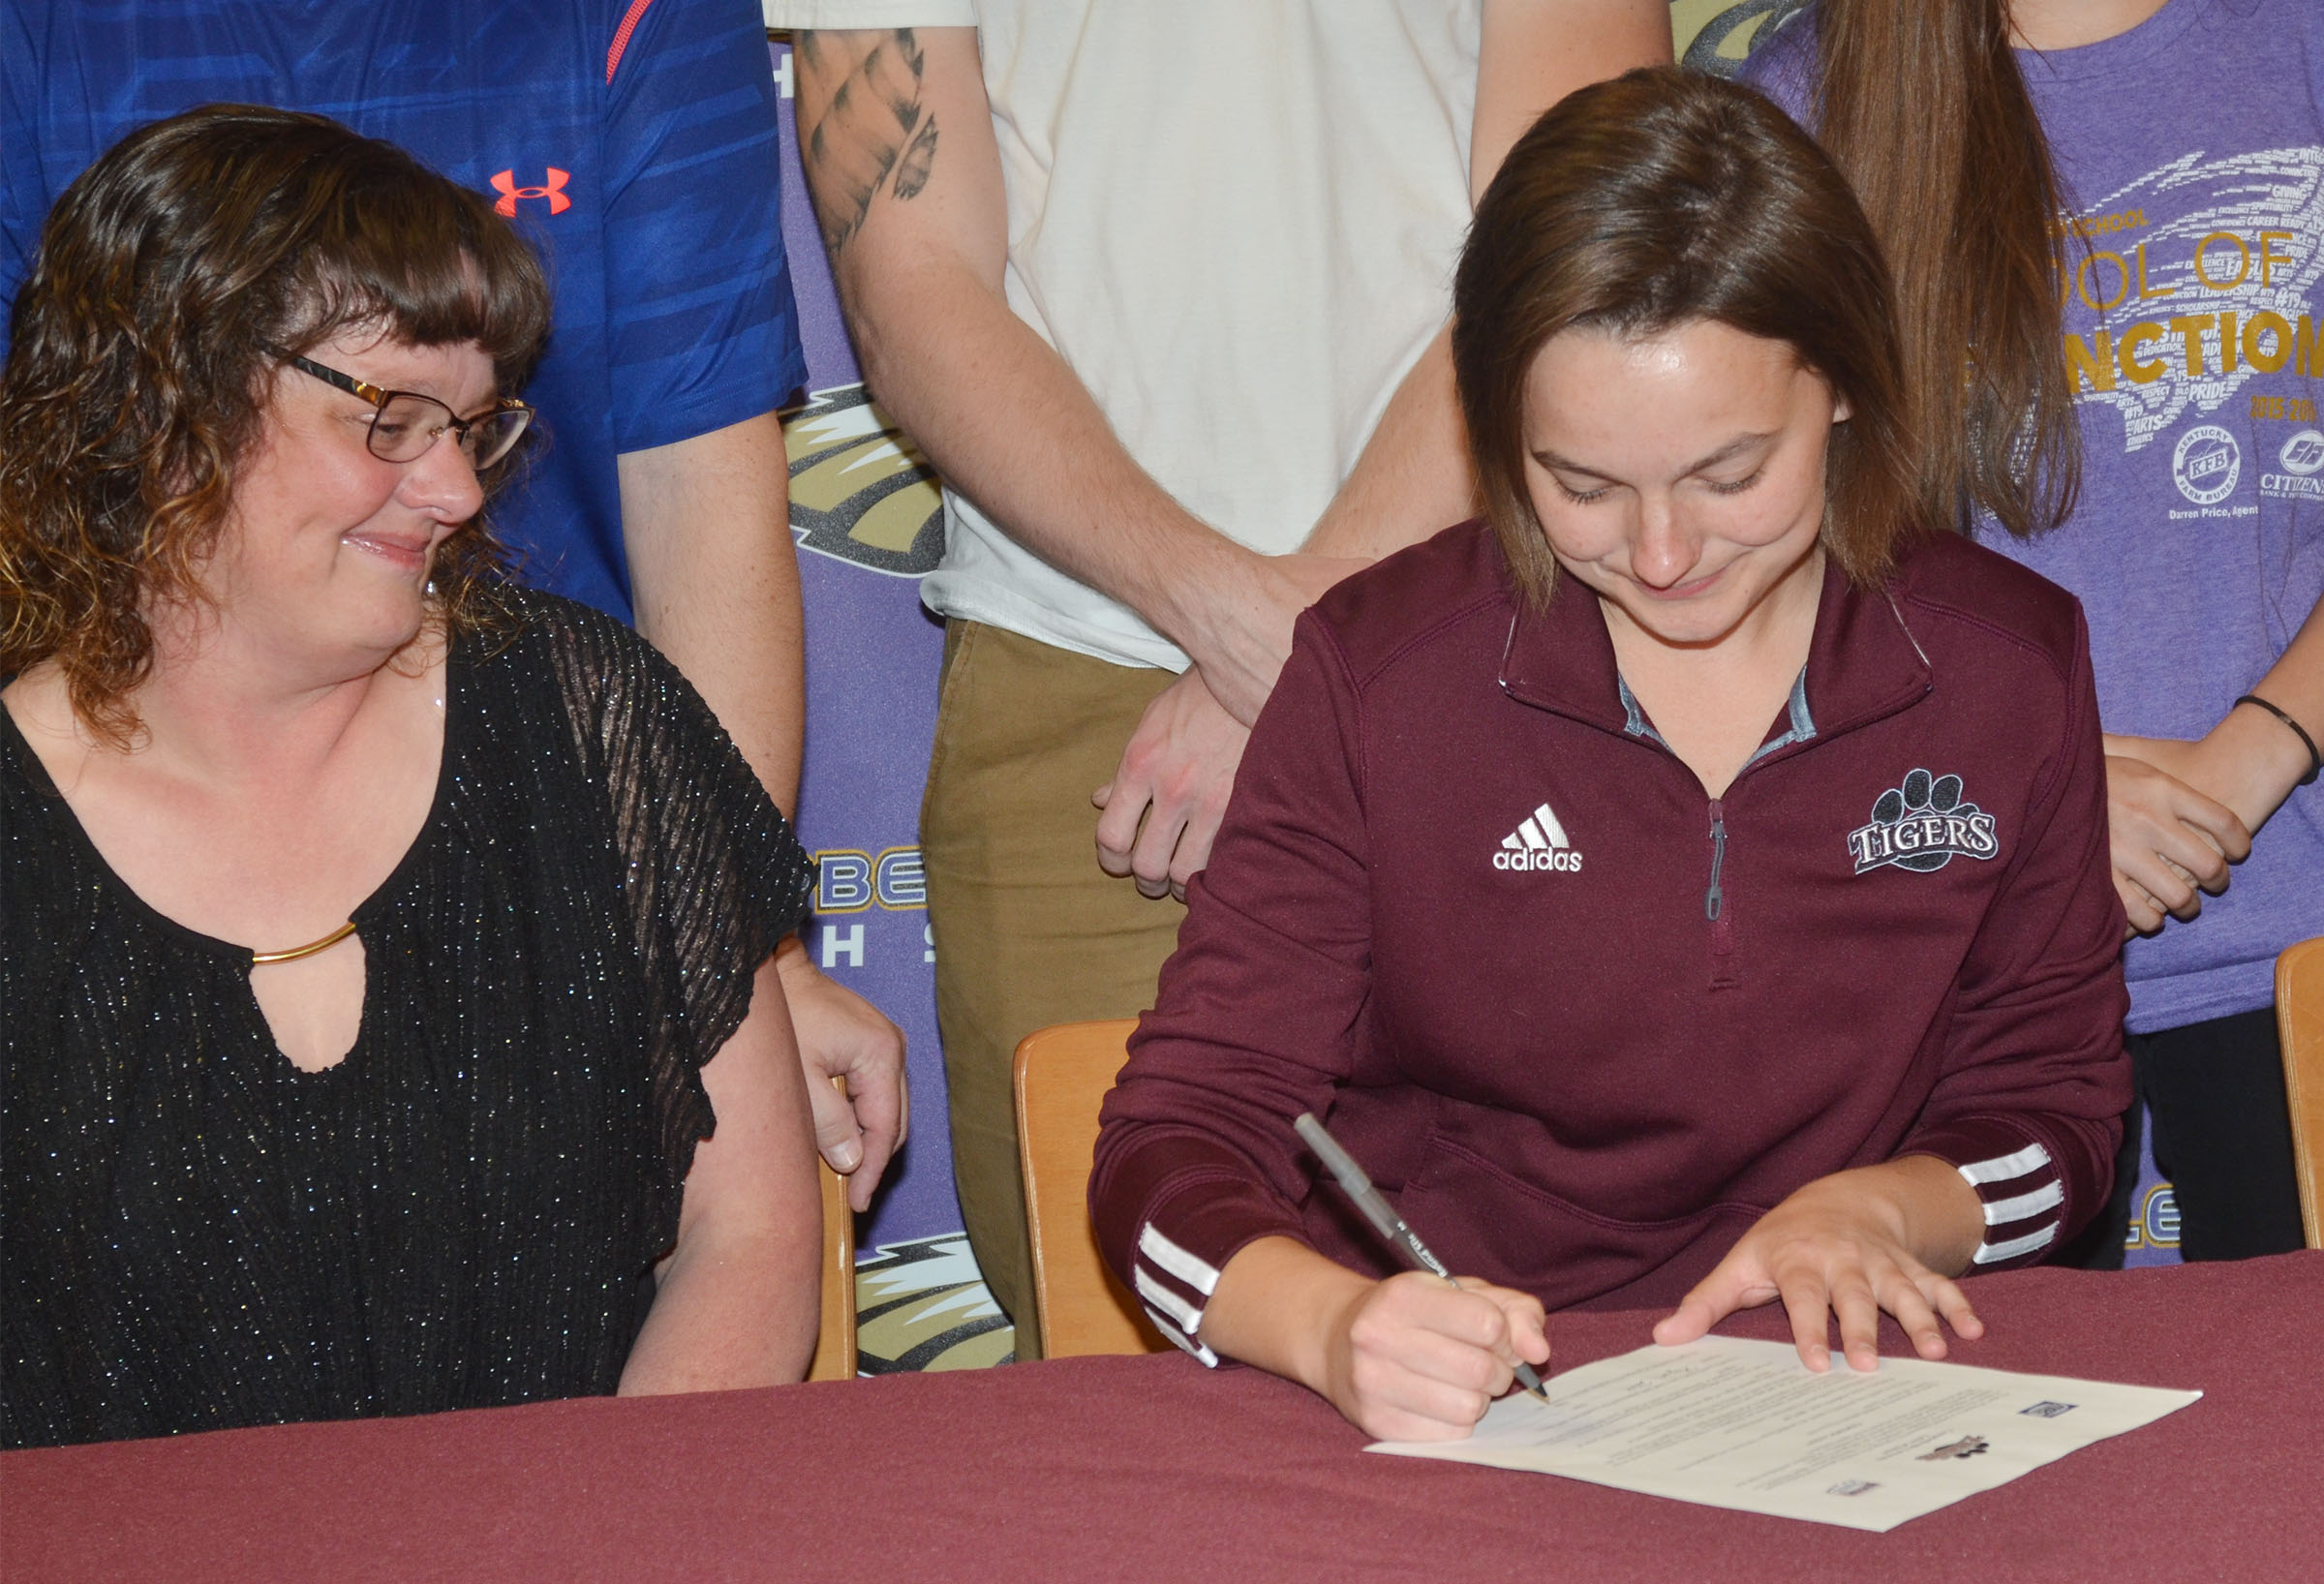 Campbellsville High School senior Kyrsten Hill will continue her academic and tennis career at Campbellsville University this fall. She recently signed her letter of intent in a special ceremony with her family, including her mother, Tonya, at left, her friends, teammates and coaches.